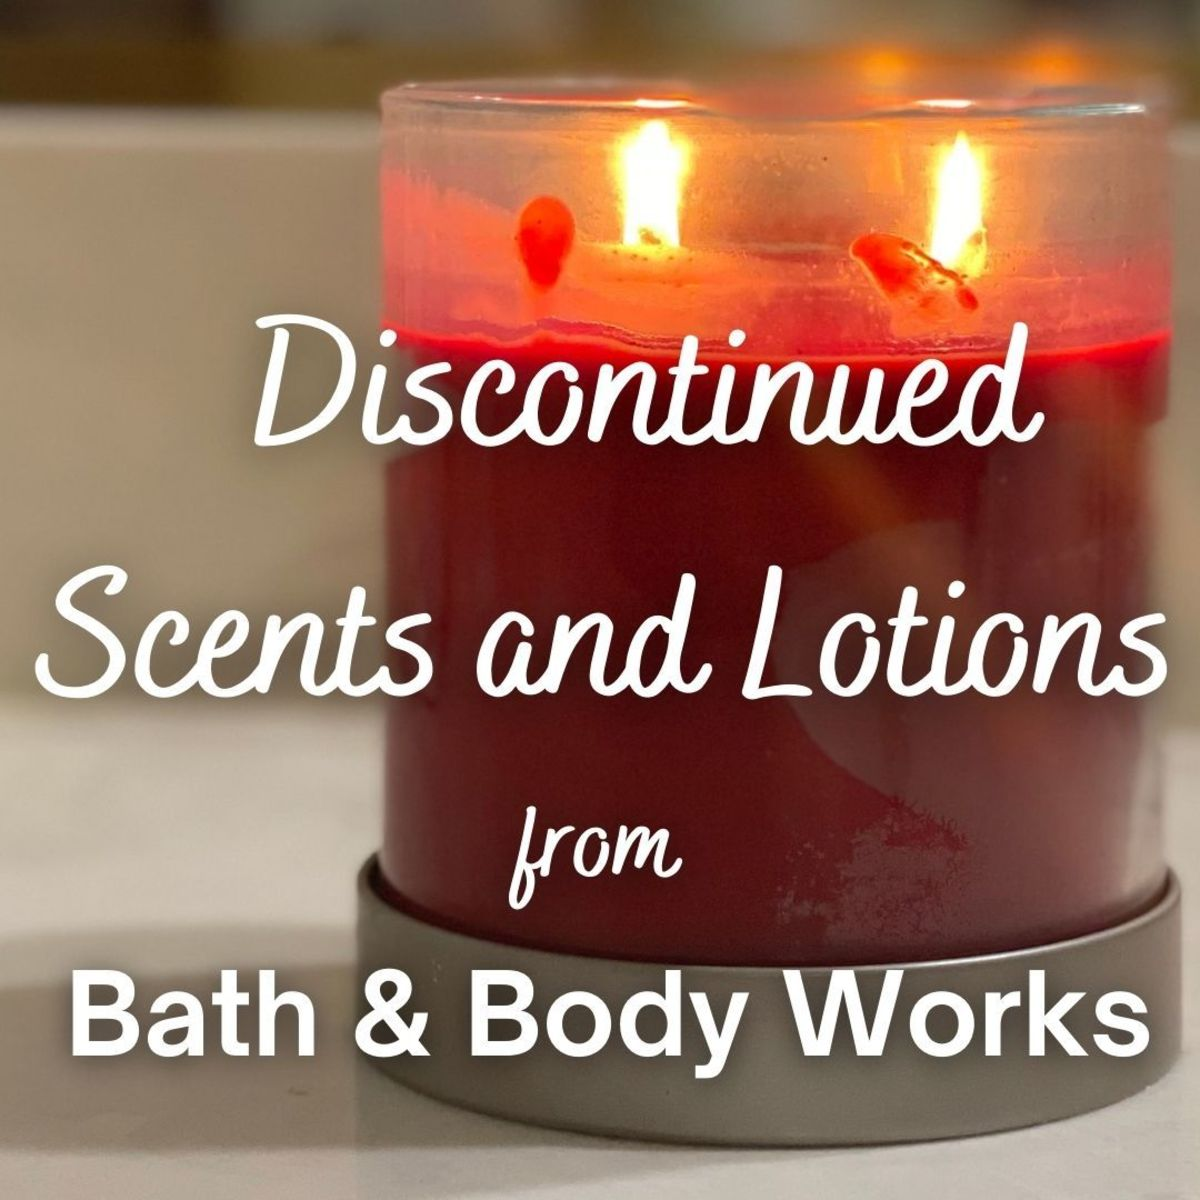 Discontinued Bath & Body Works Scents and Lotions